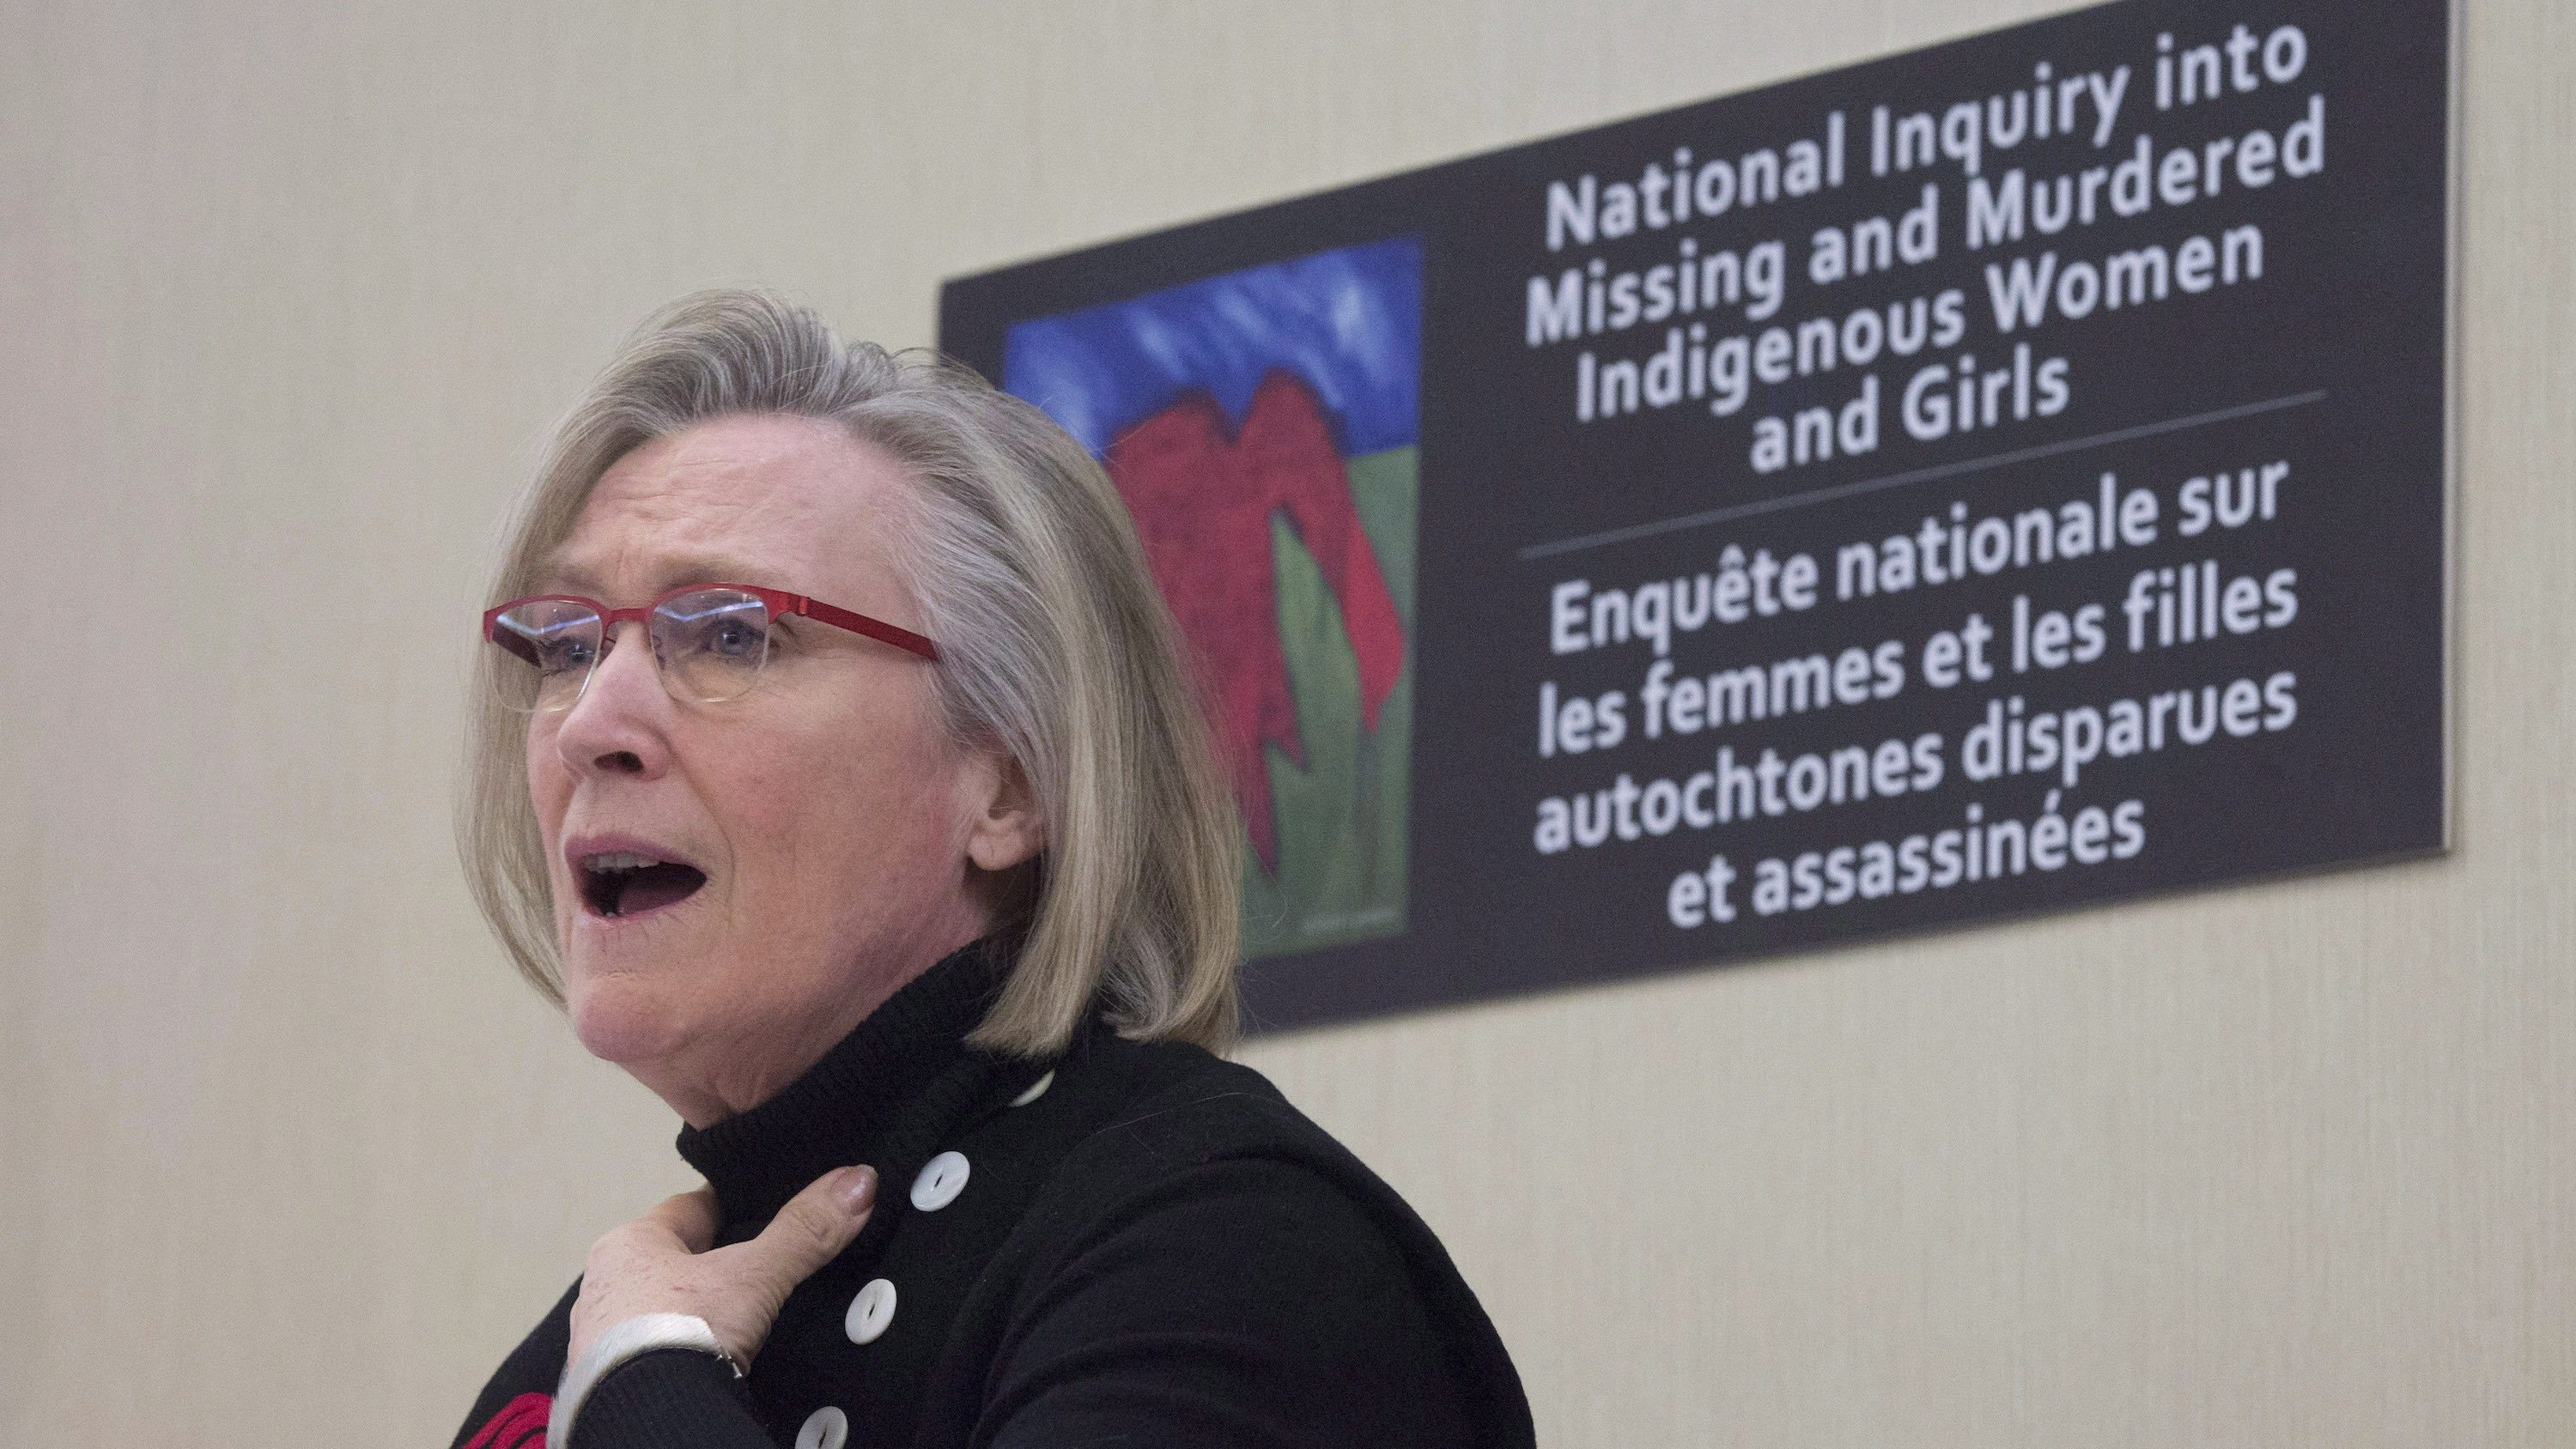 Critics say Canada's inquiry into missing and murdered indigenous women will be toothless